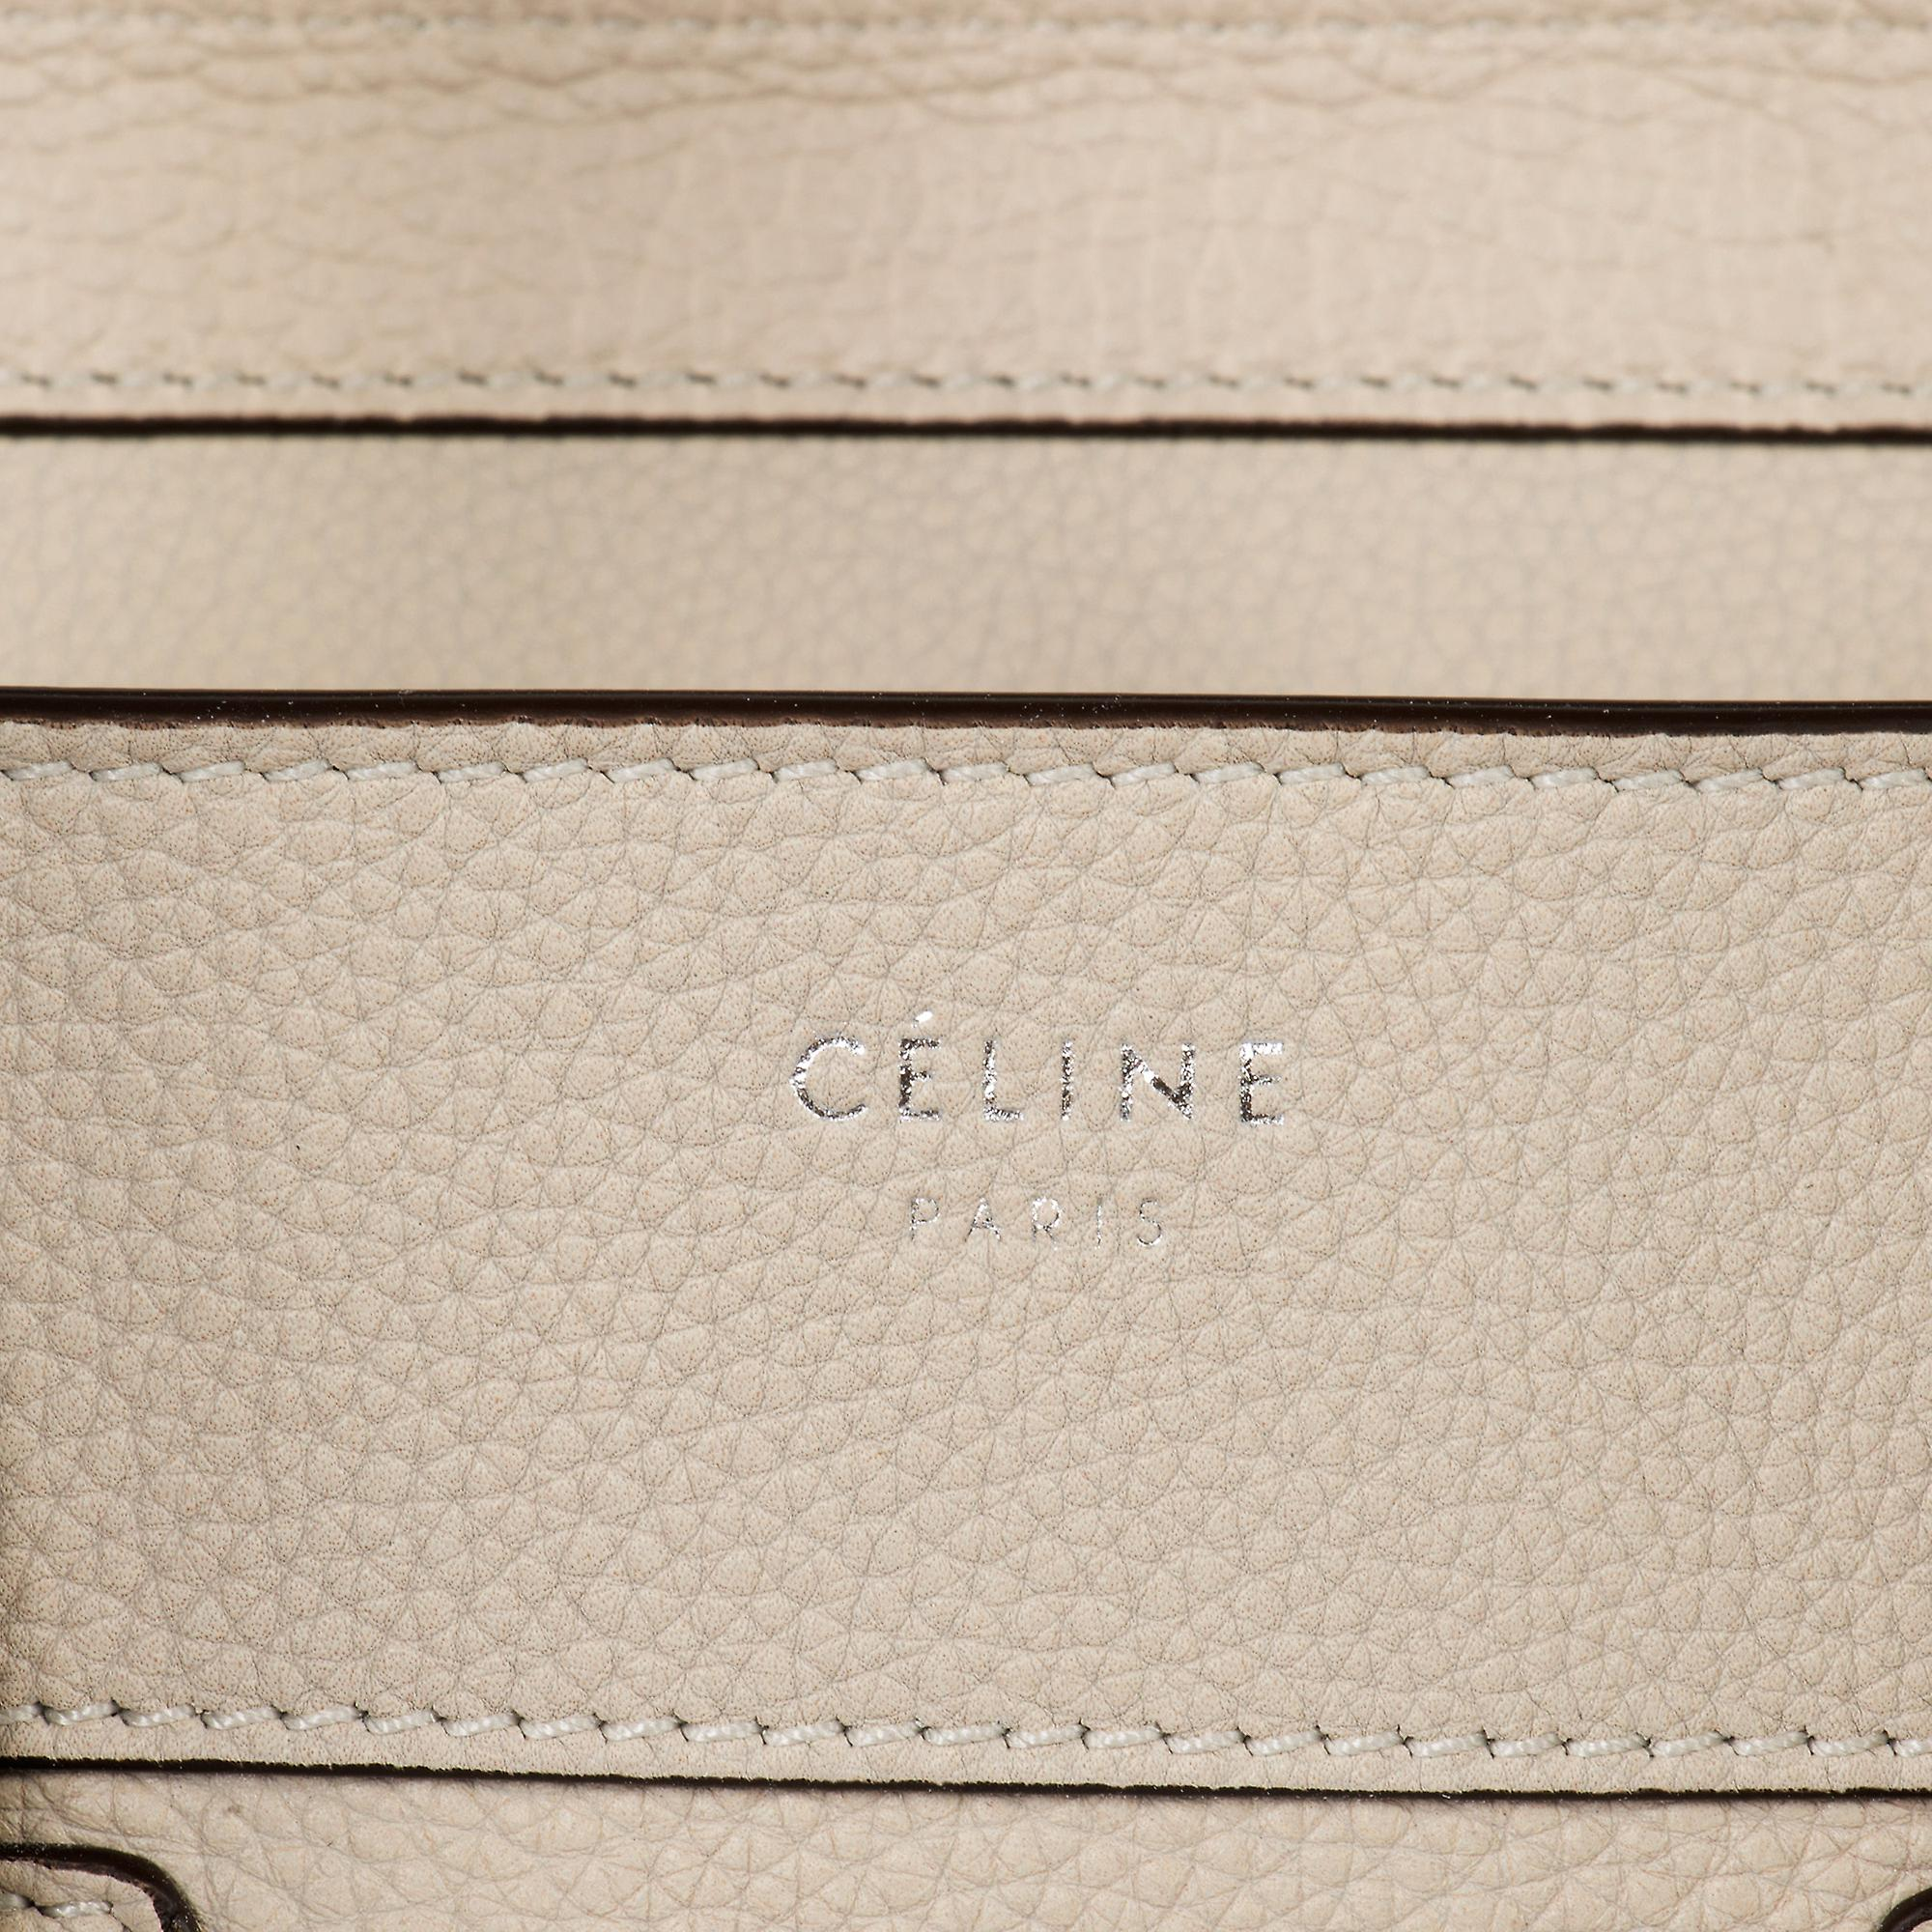 Celine Micro Luggage Leather Bag   Beige with Silver Hardware